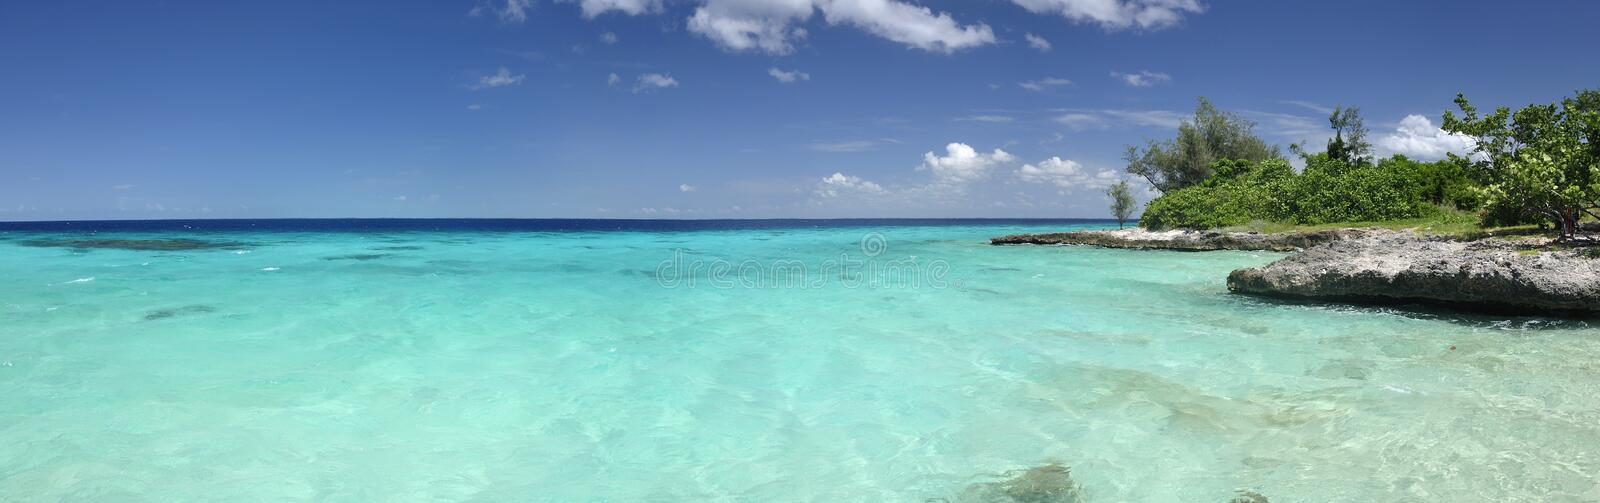 Mer tropicale images stock